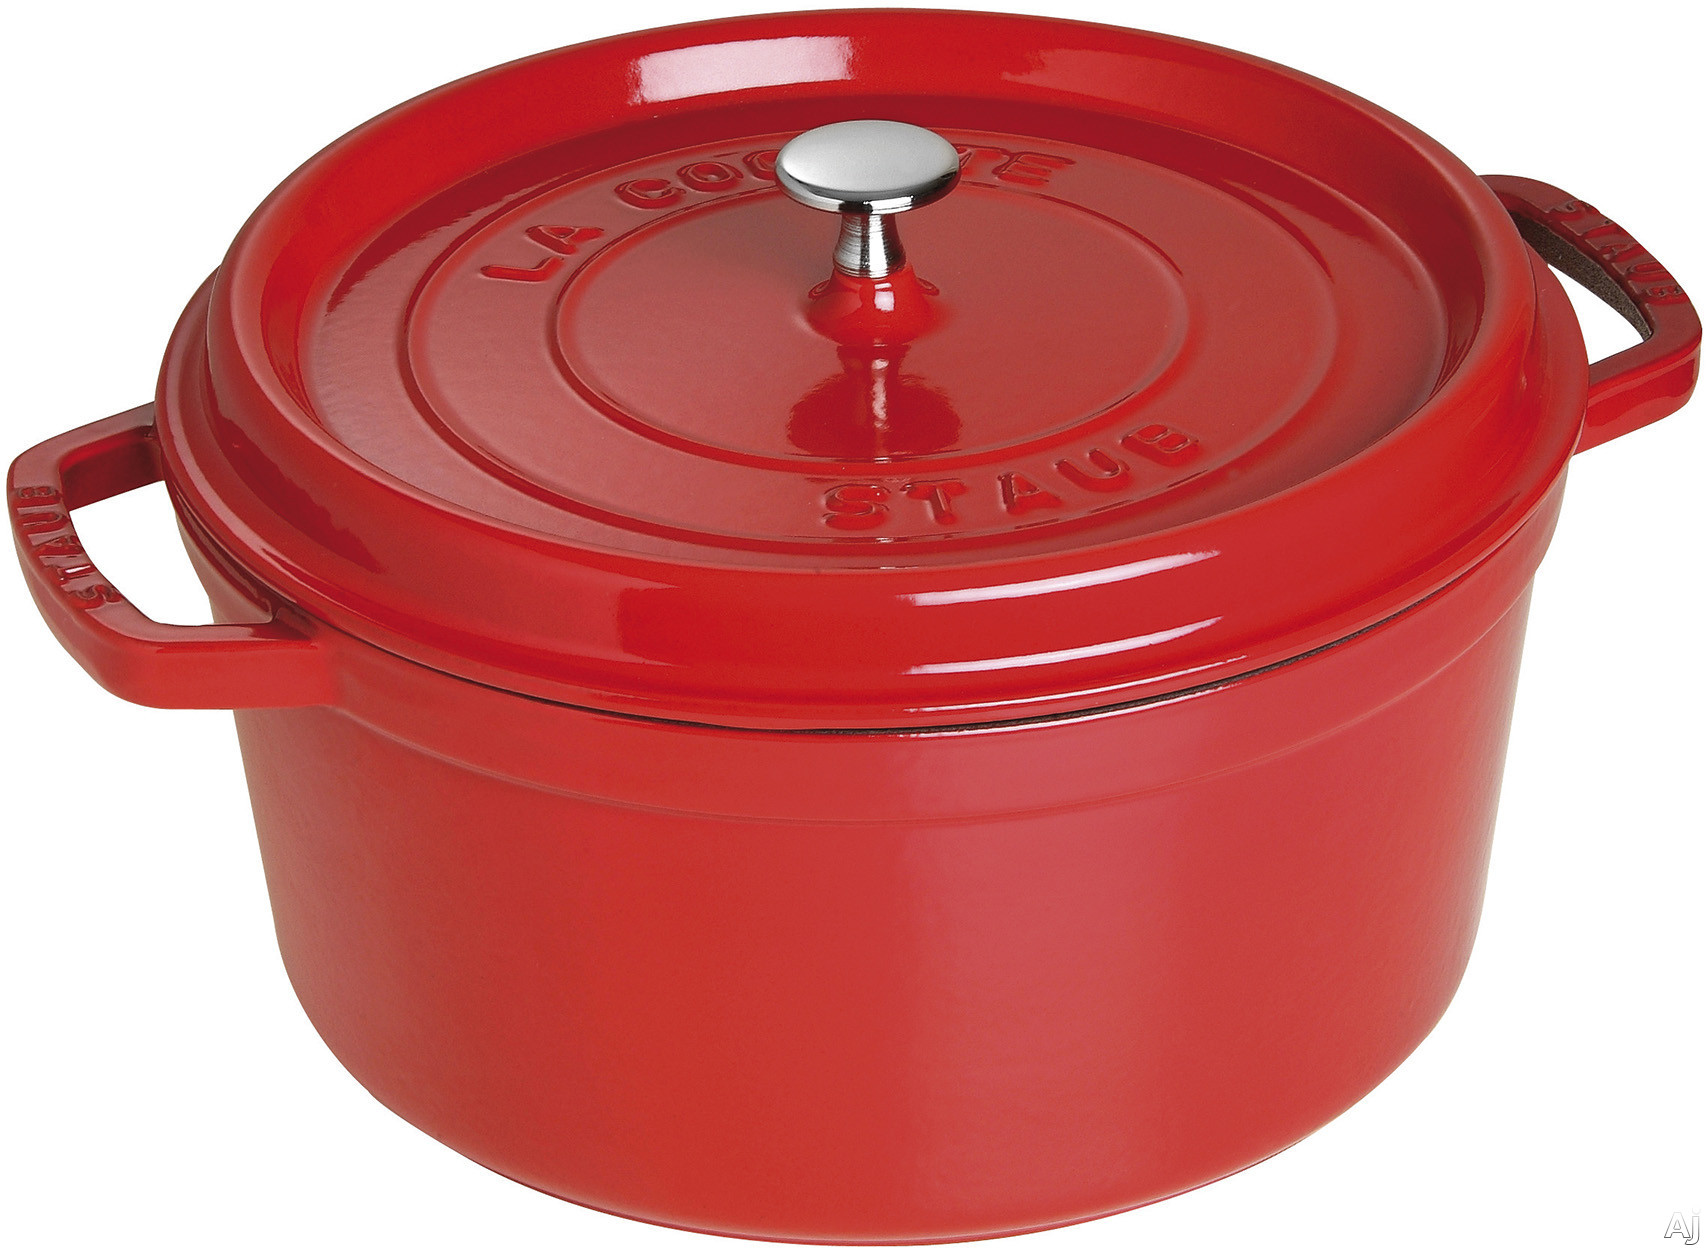 Staub 1102806 7 Quart Cast Iron Round Cocotte with Heavyweight Lid, Induction Suitable, Oven Safe, Made in France, Dishwasher Safe and Nickel Steel Knob: Cherry